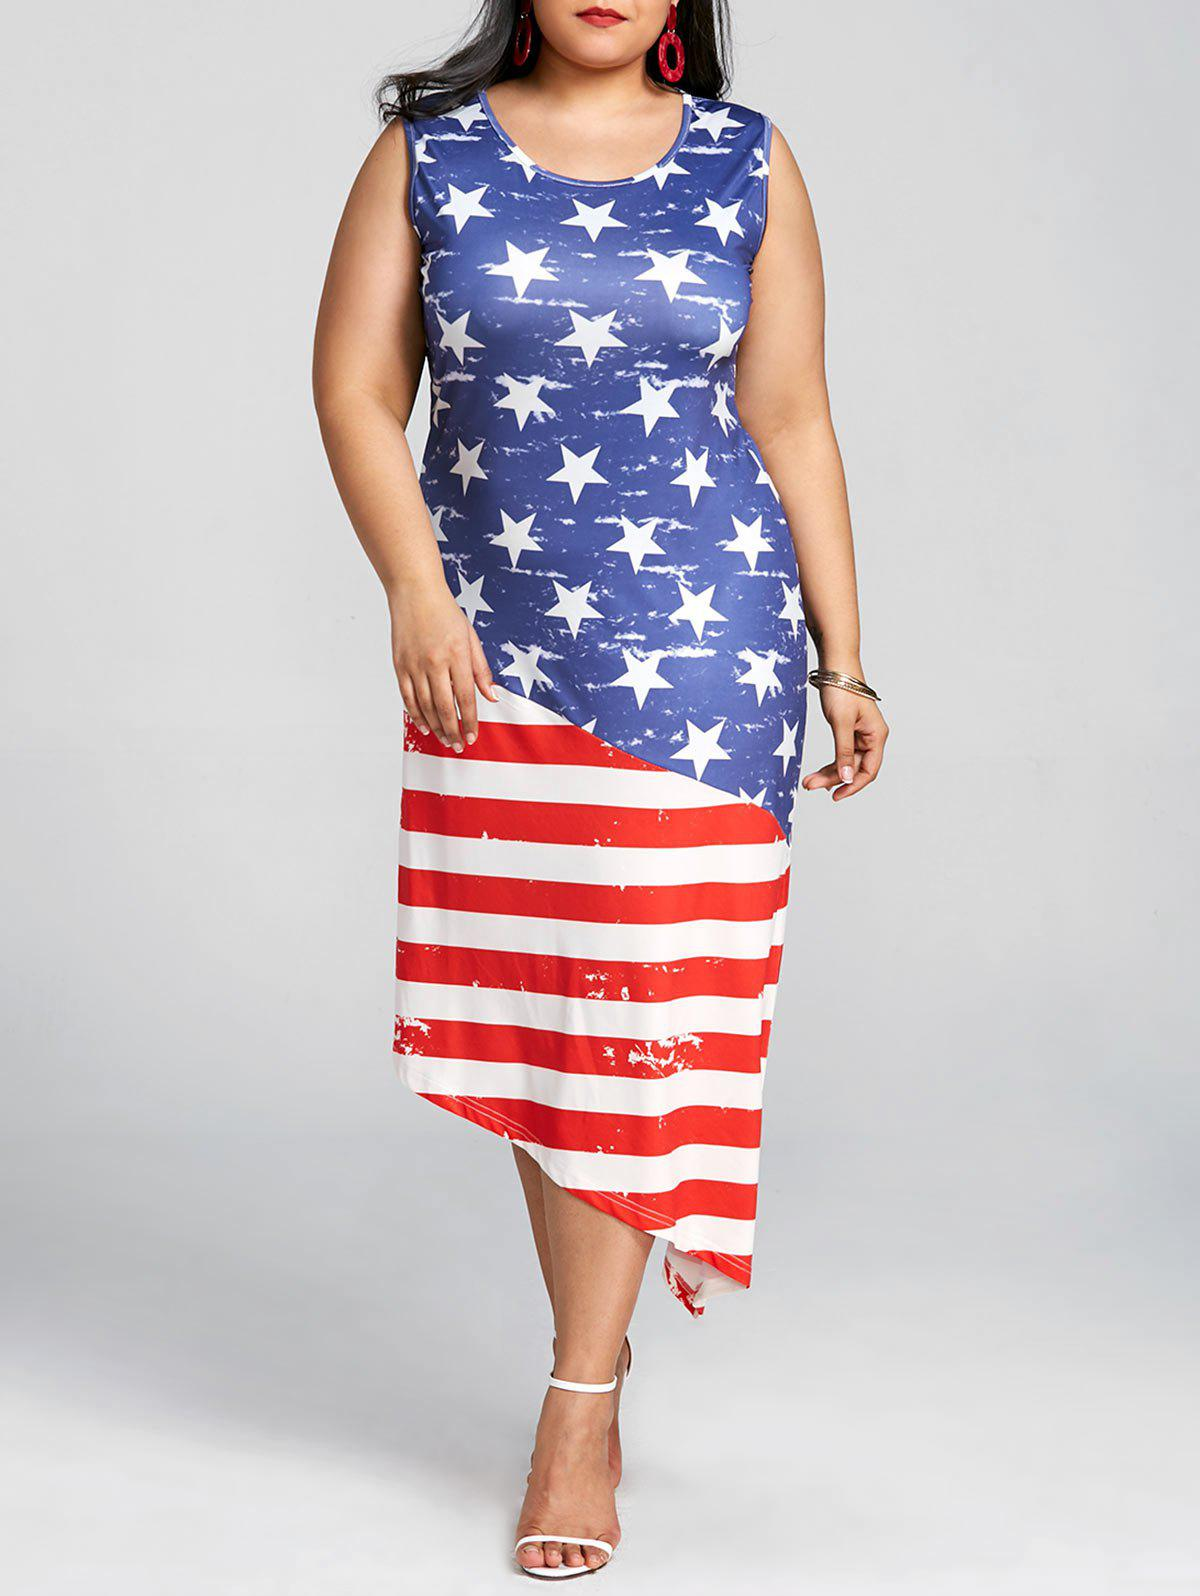 75% OFF] Sleeveless Plus Size Patriotic American Flag Dress | Rosegal